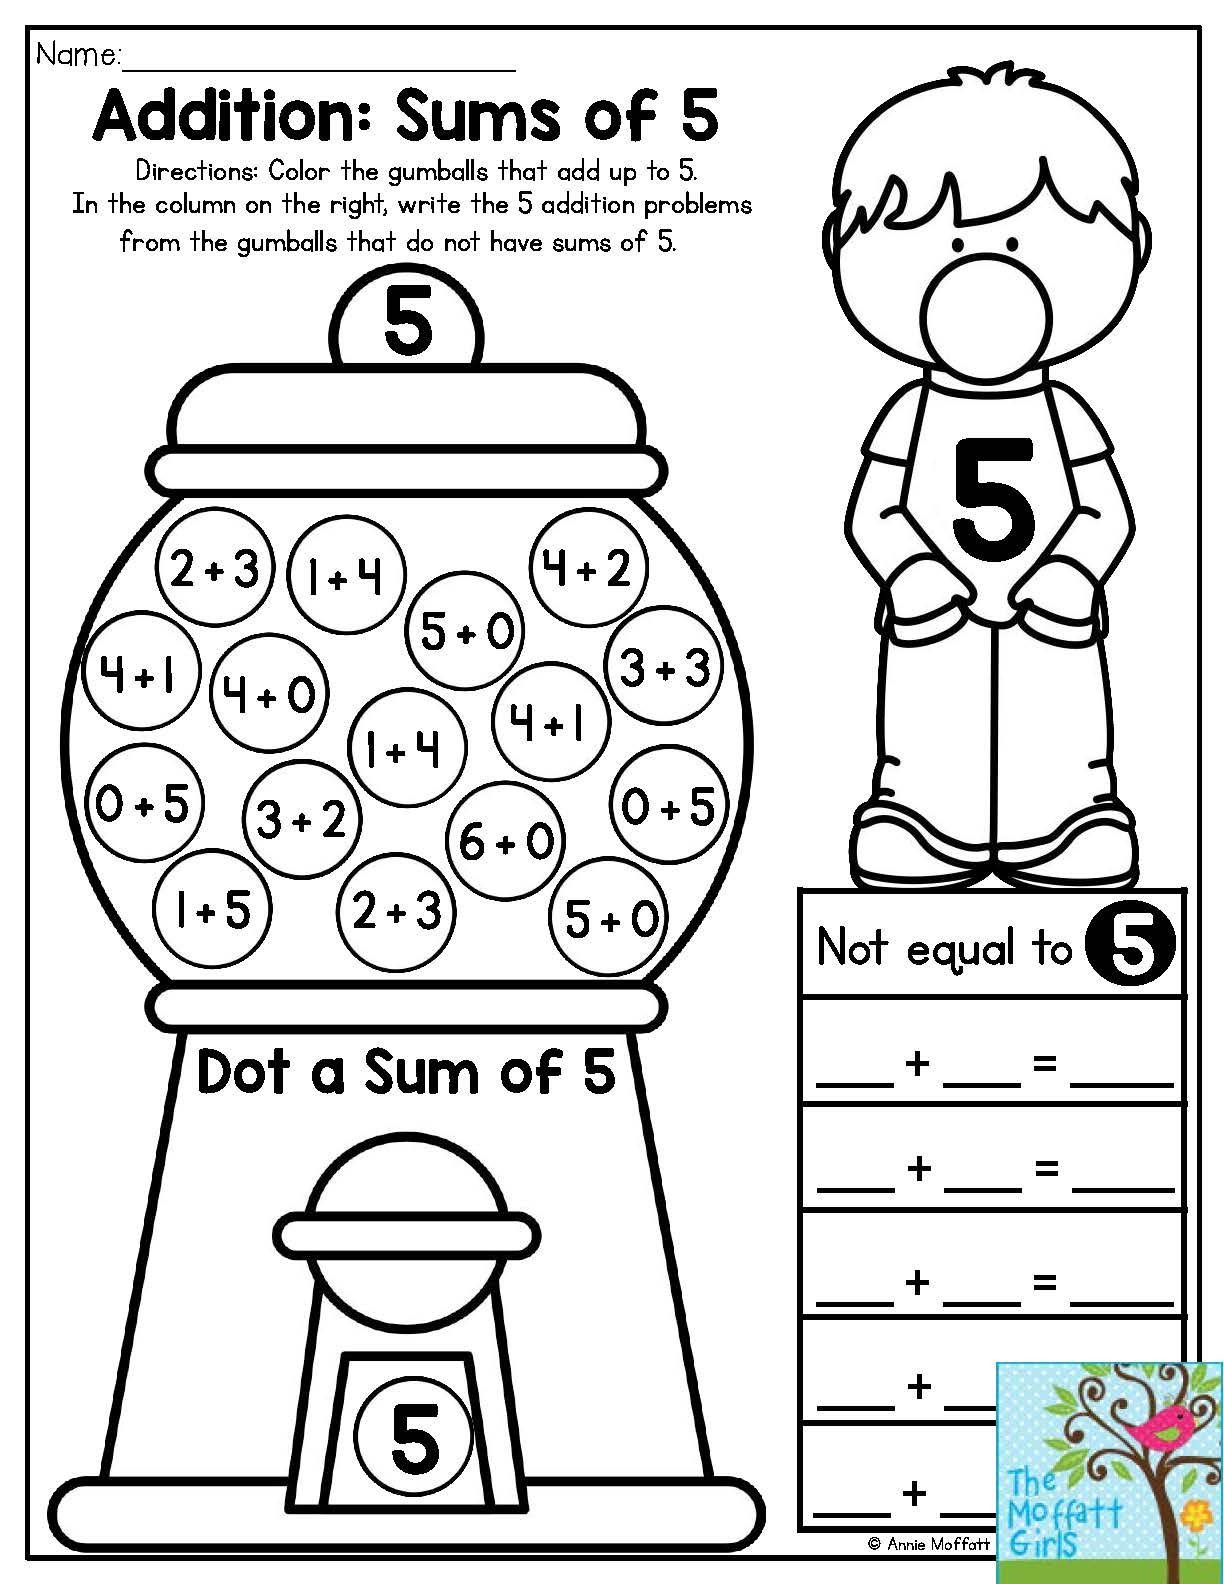 Bubble Gum Math Worksheets Bubble Gum Numbers Addition Sums Of 5 Color the Gumballs